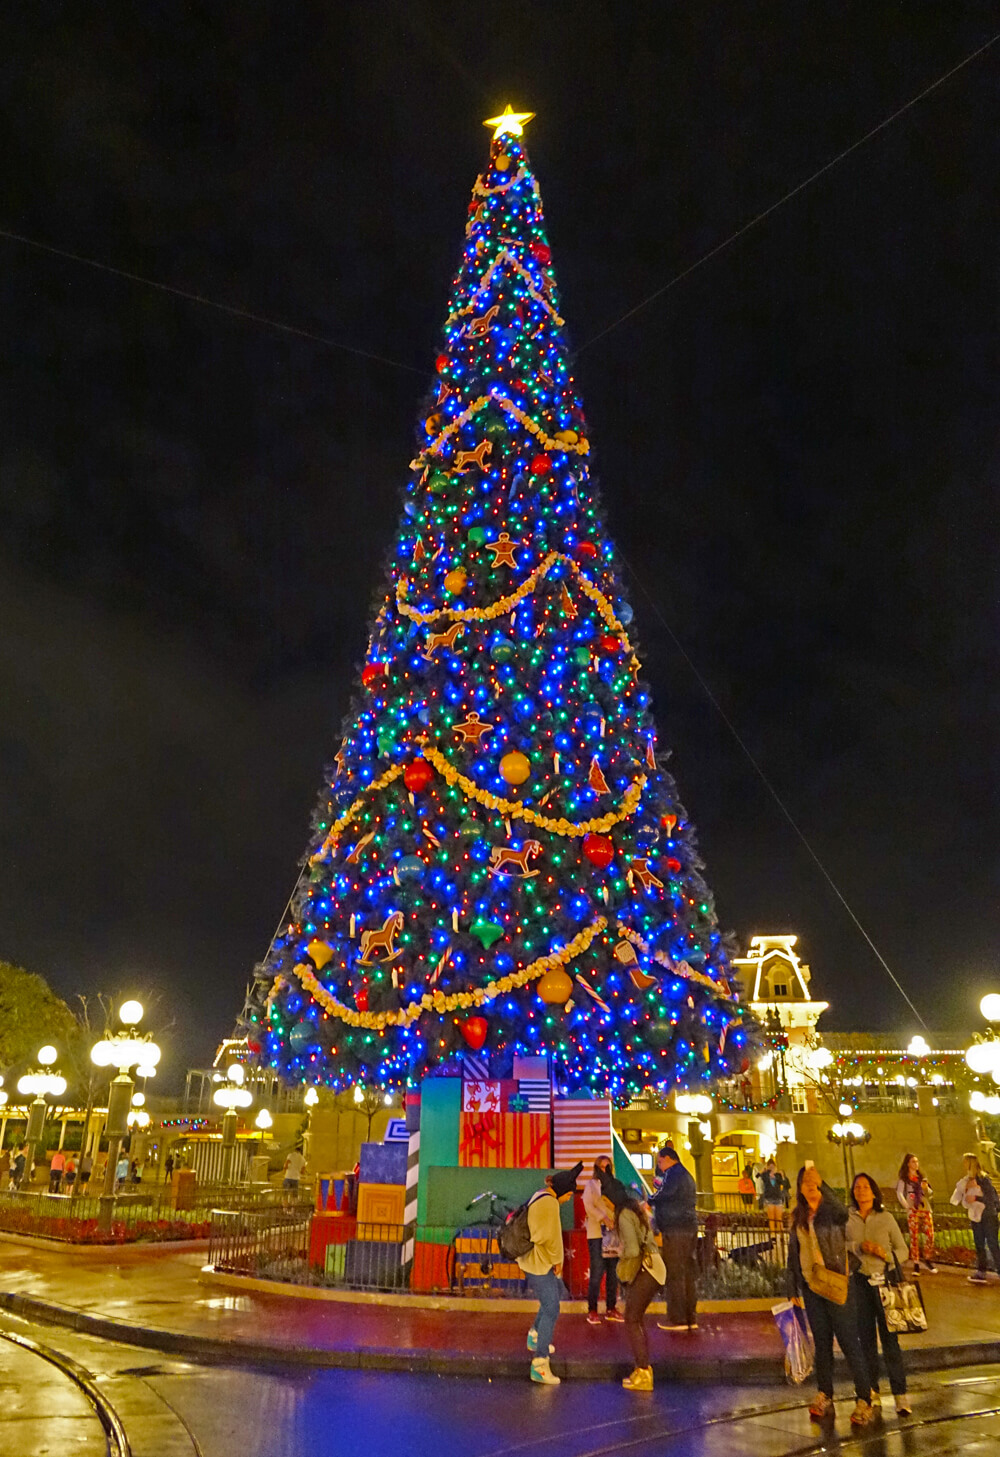 disney world holiday events 2018 magic kingdom tree - Florida Christmas Decorations